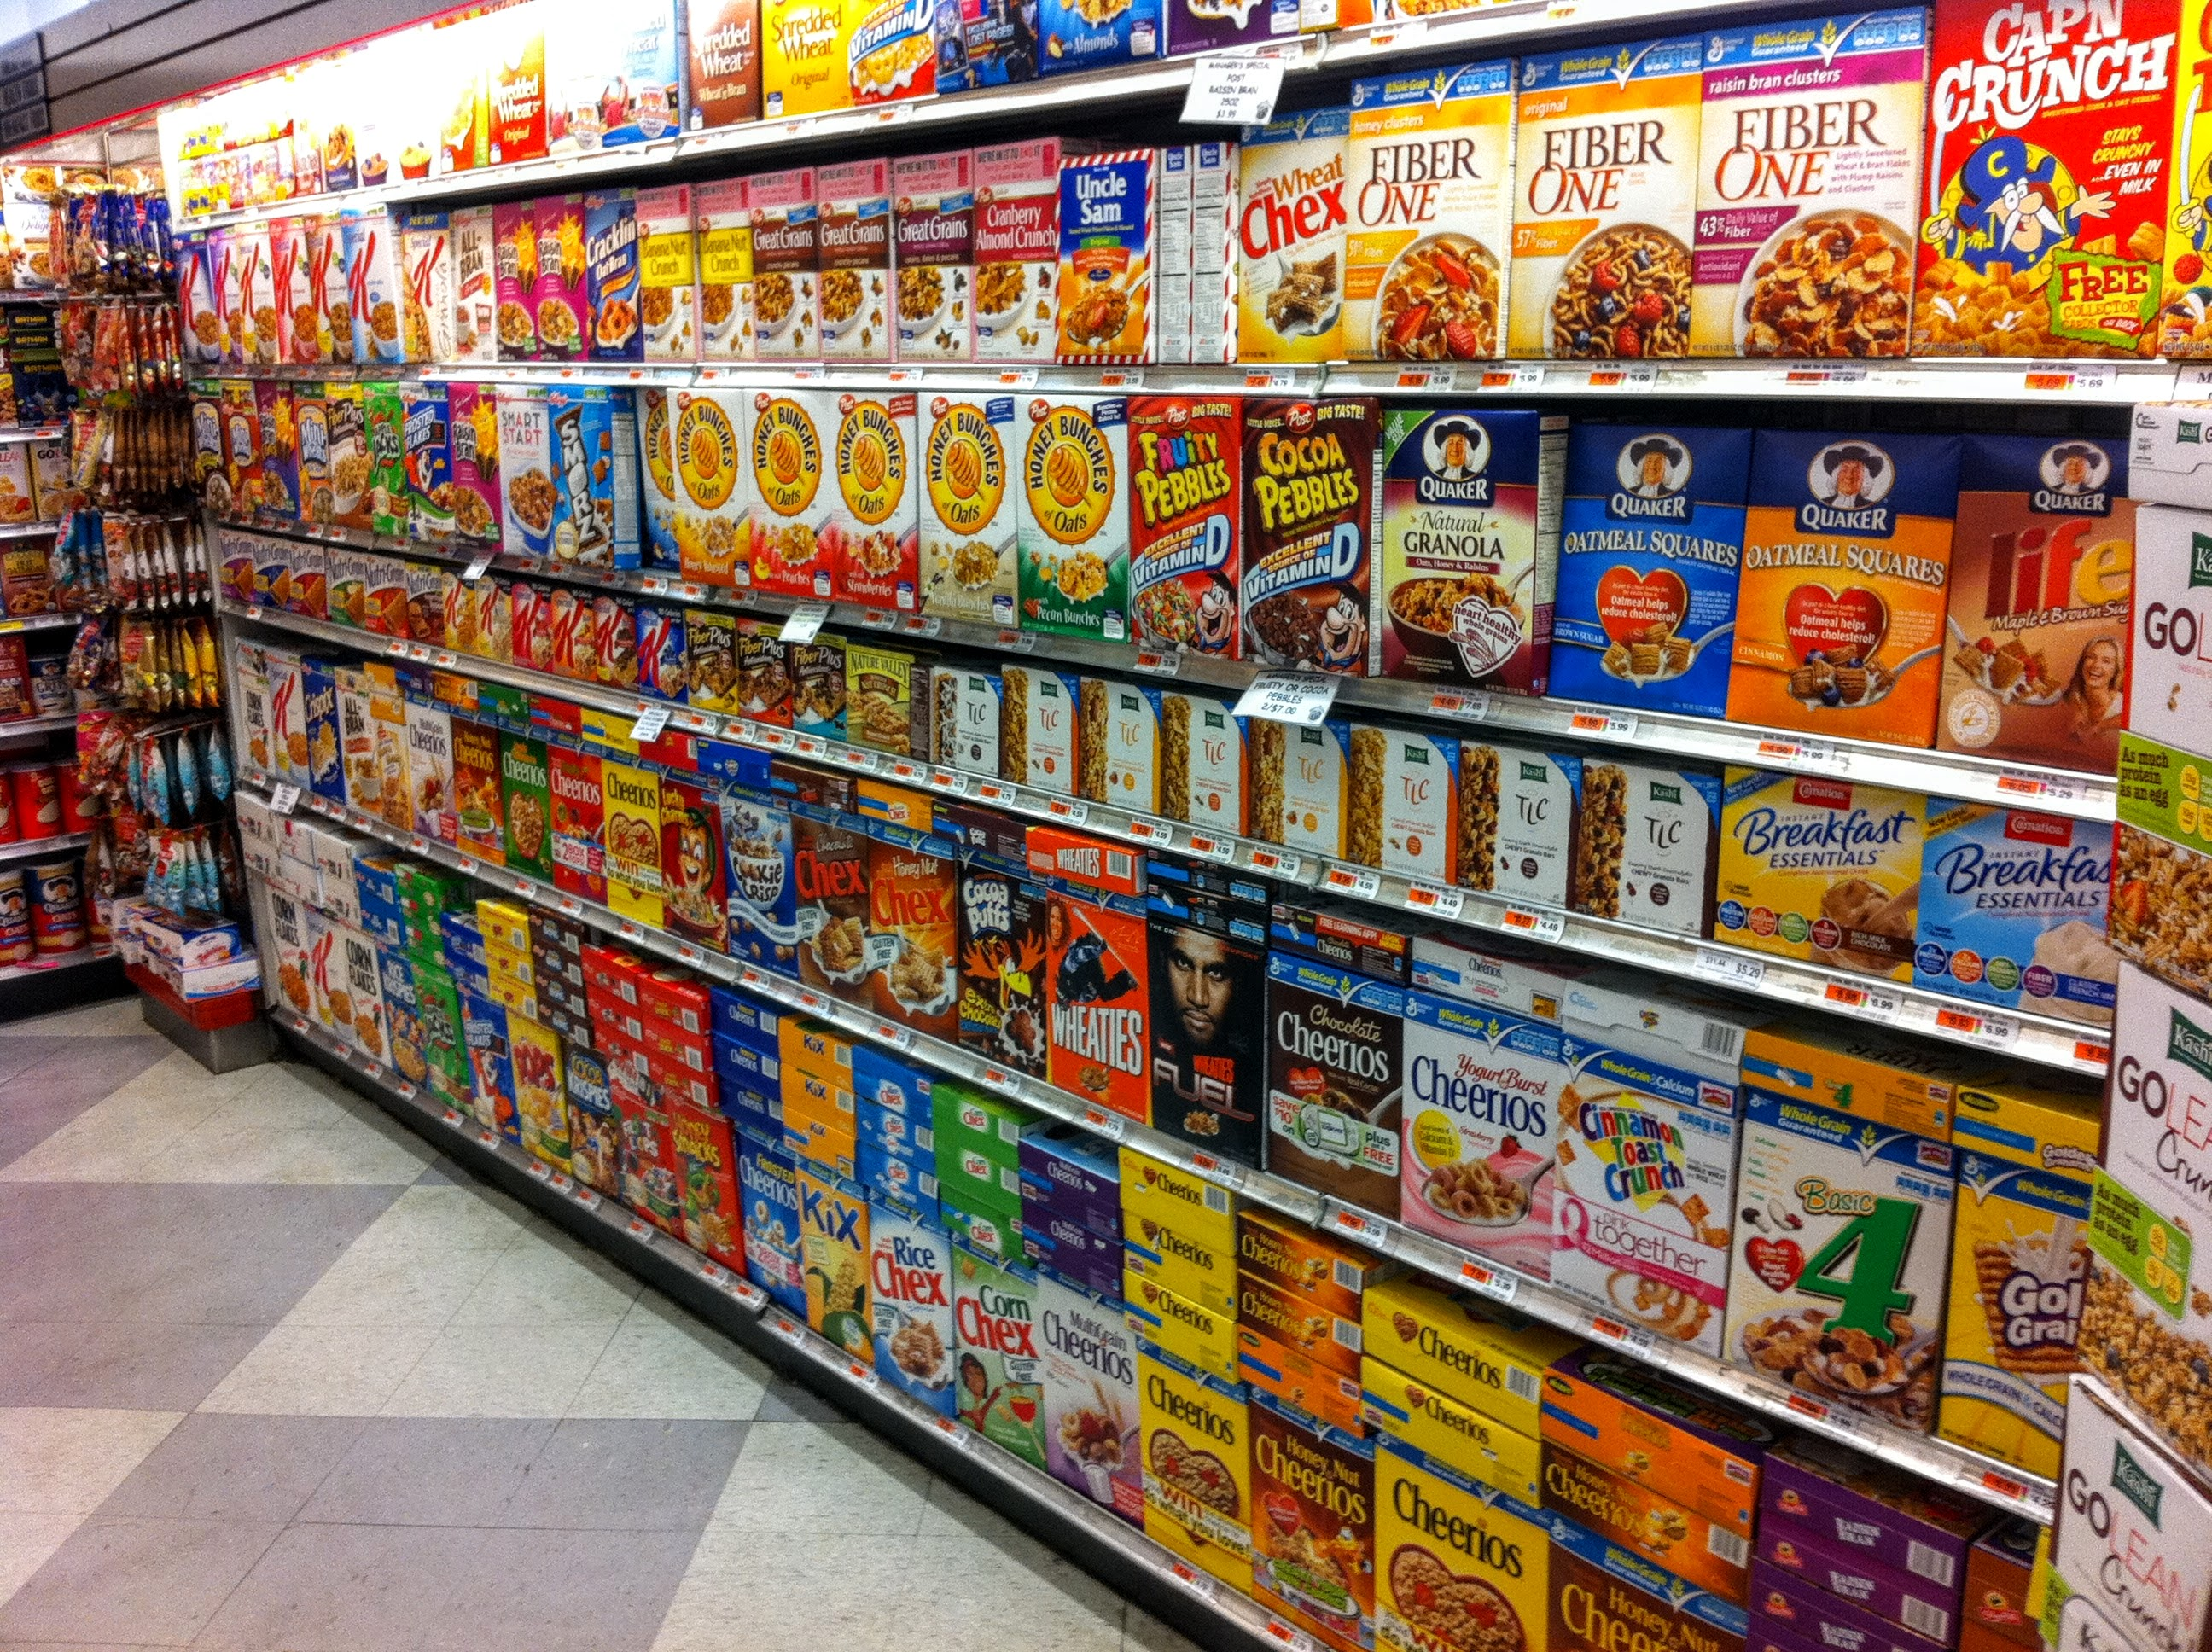 Boxes of cereal in a supermarket